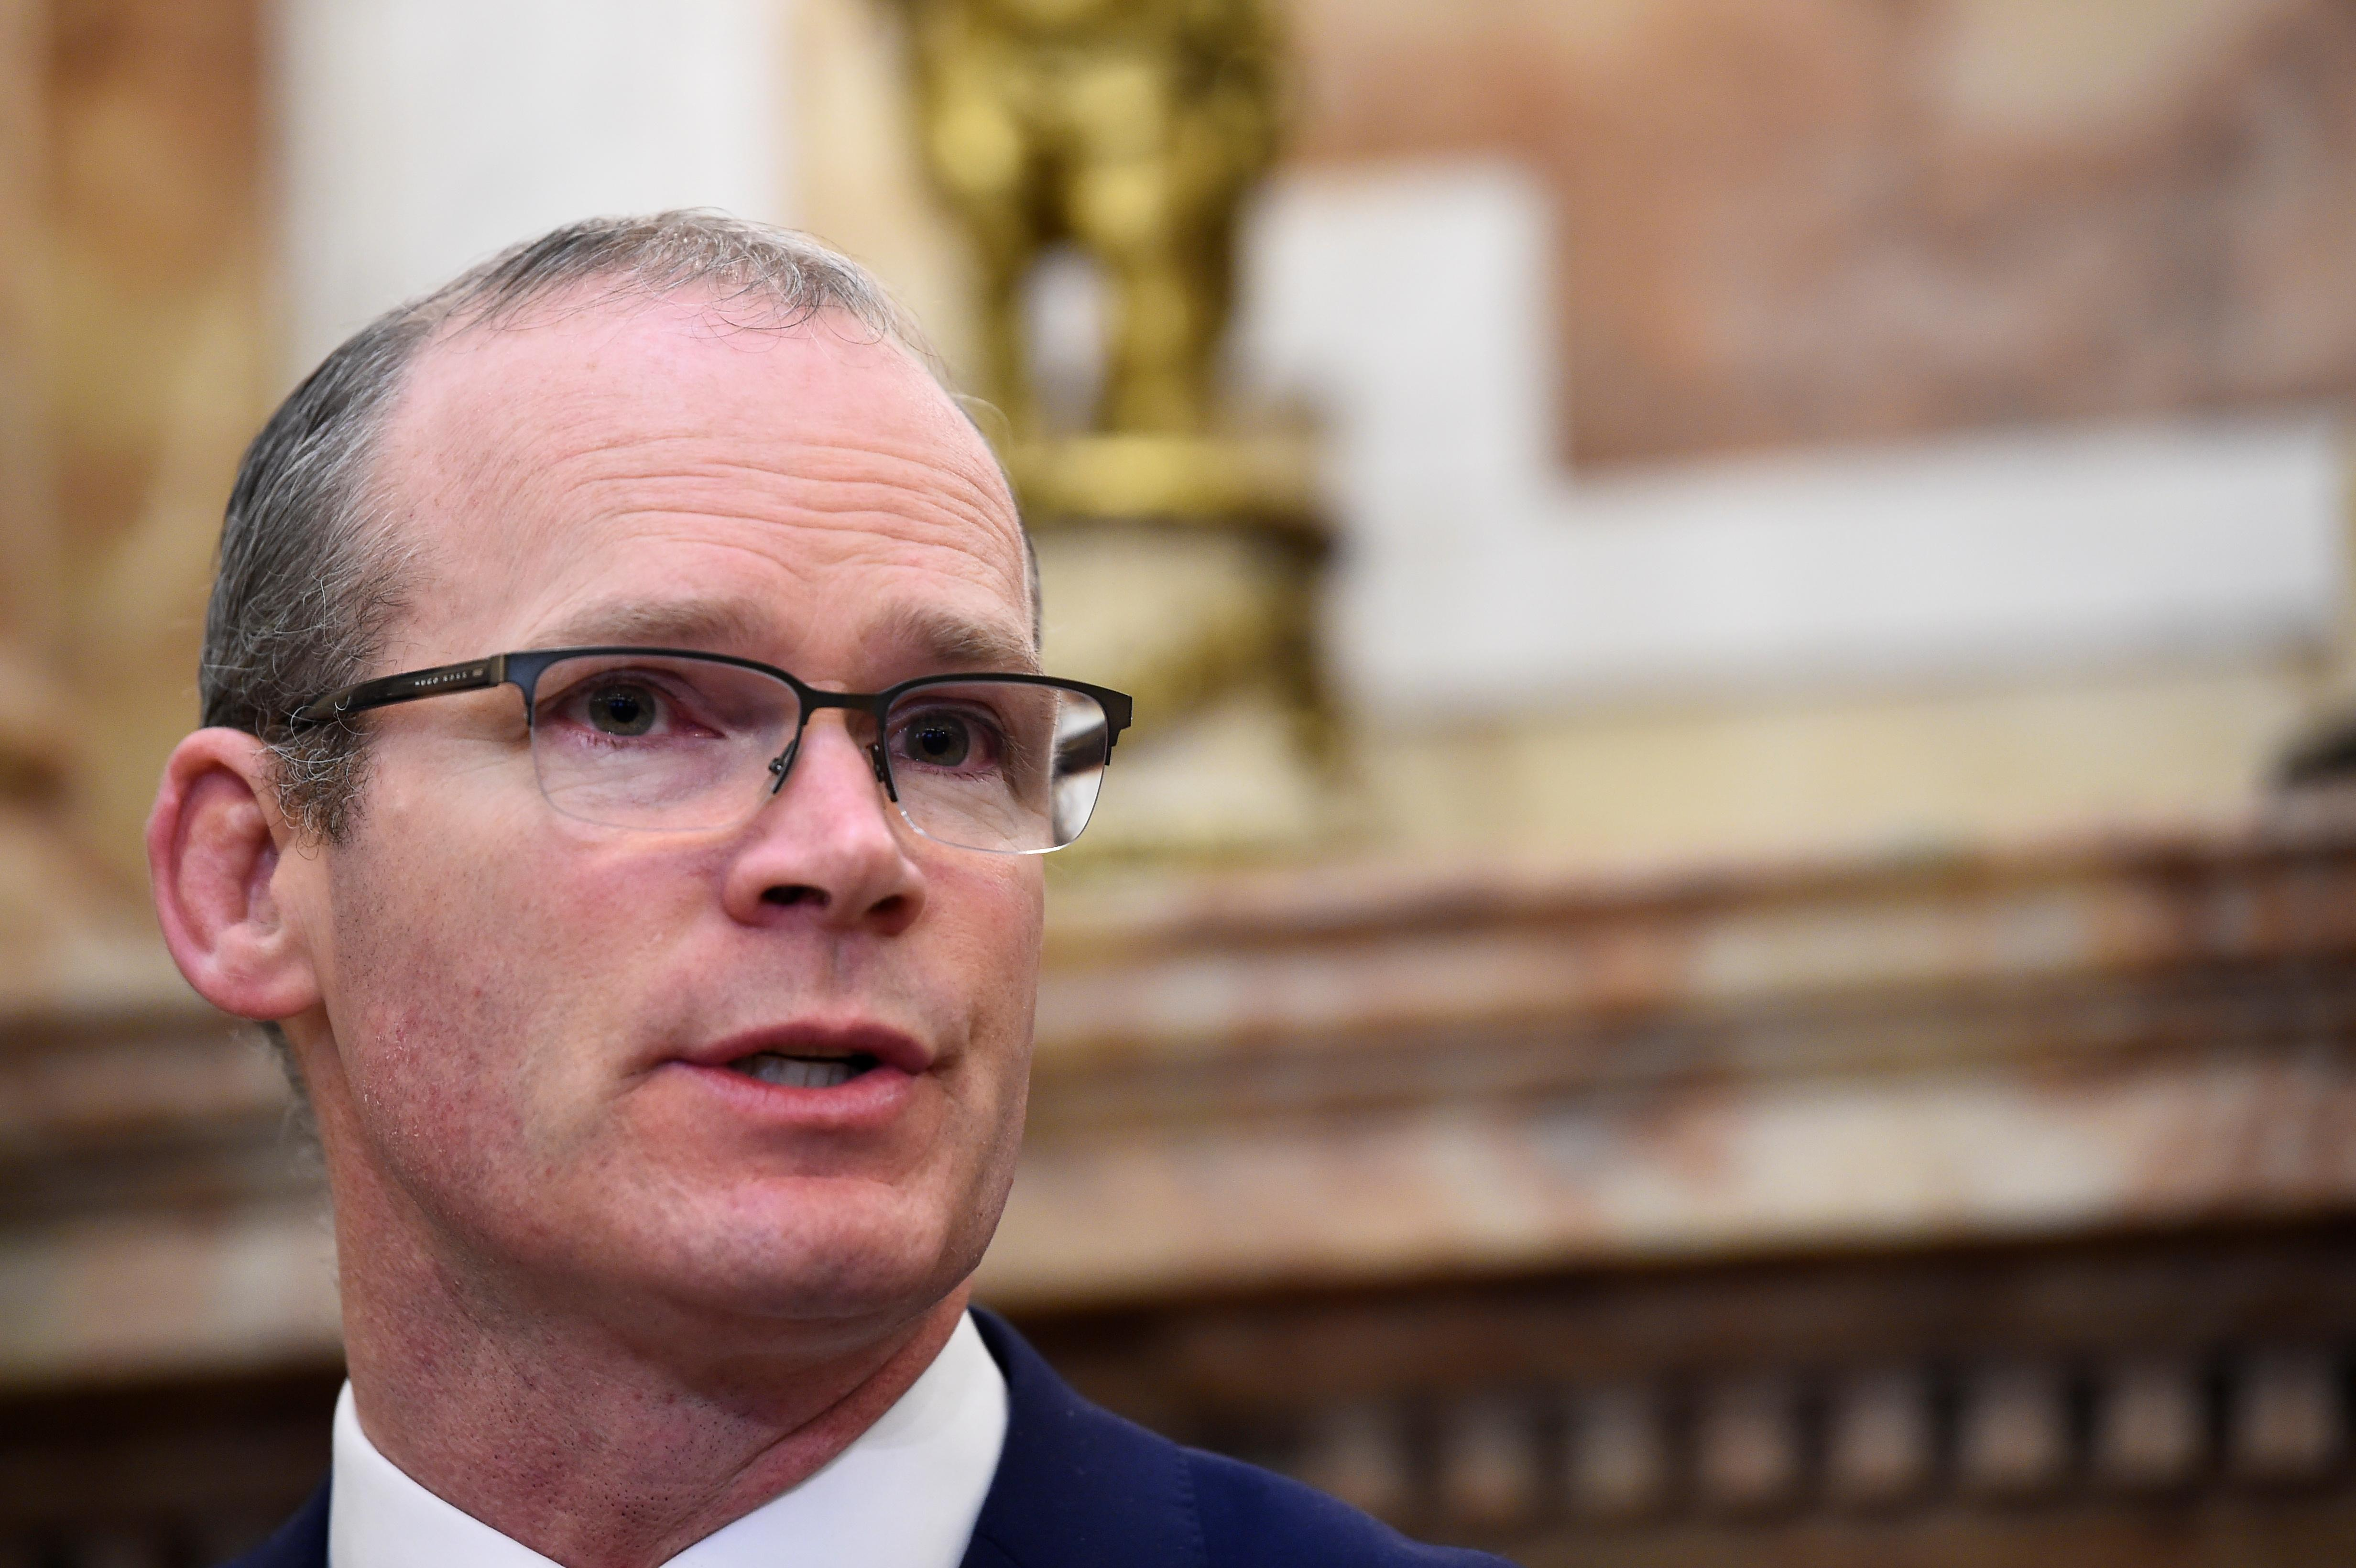 Ireland expects formal UK backstop proposals in next week: minister